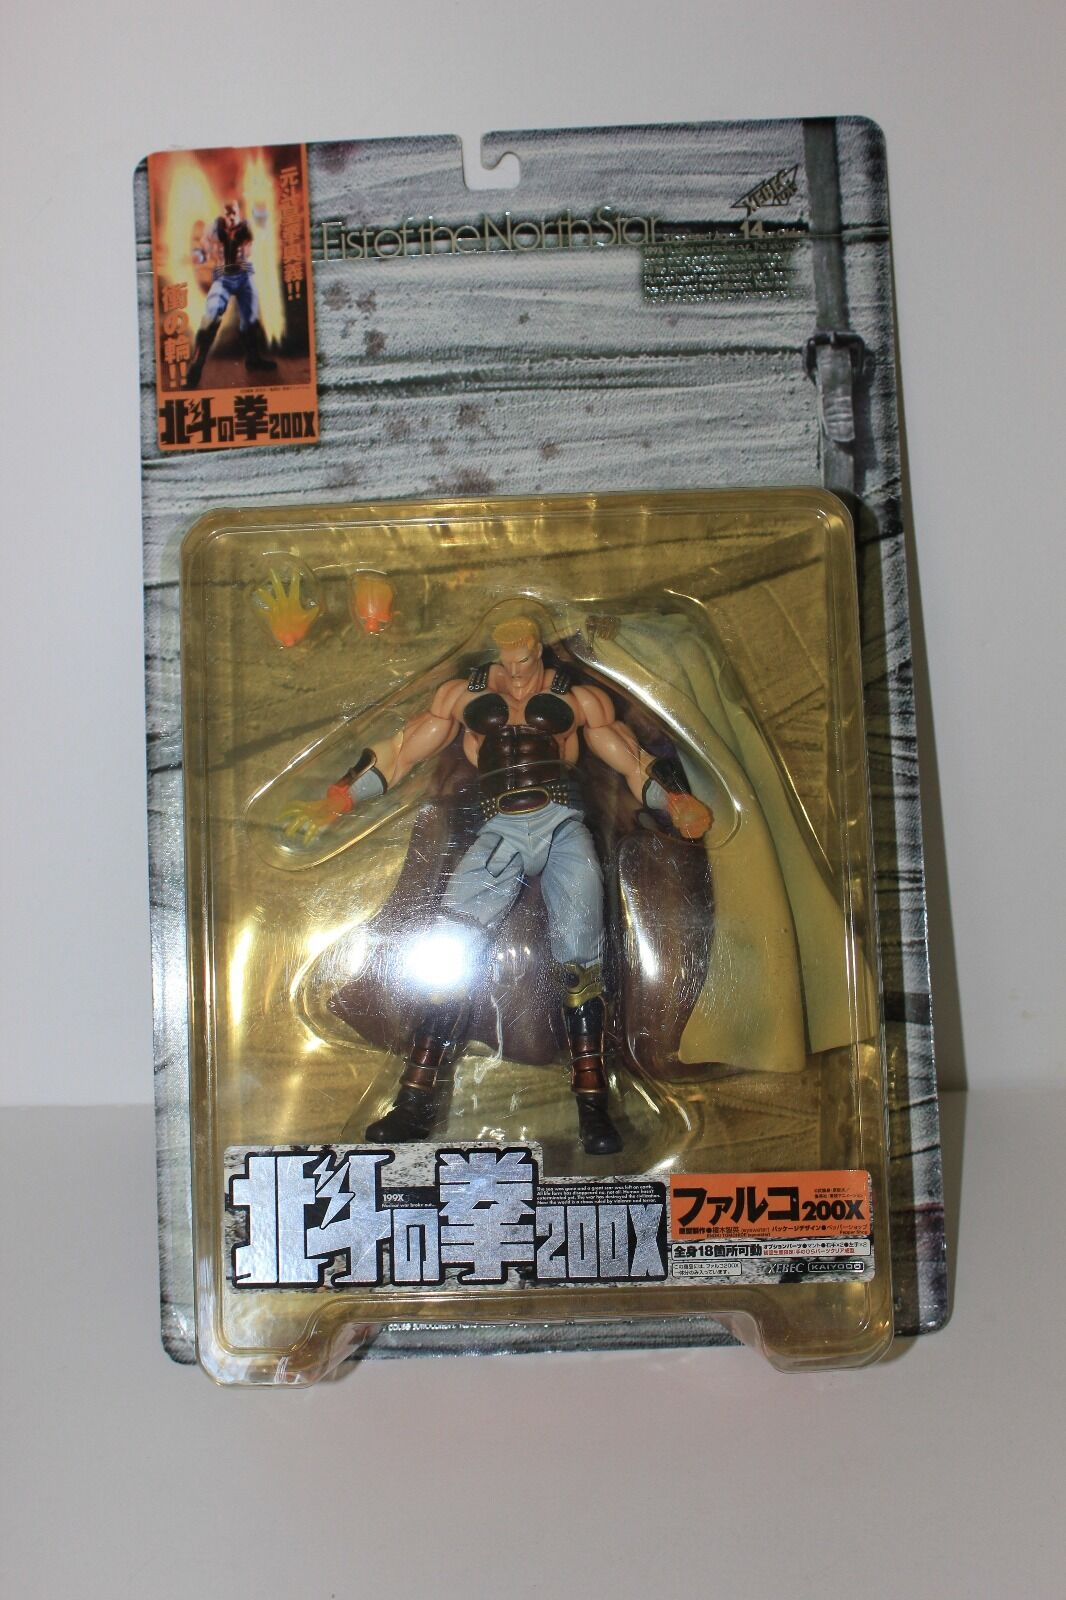 Fist of the North Star 200x Falco Action Figure by Kaiyodo Xebec